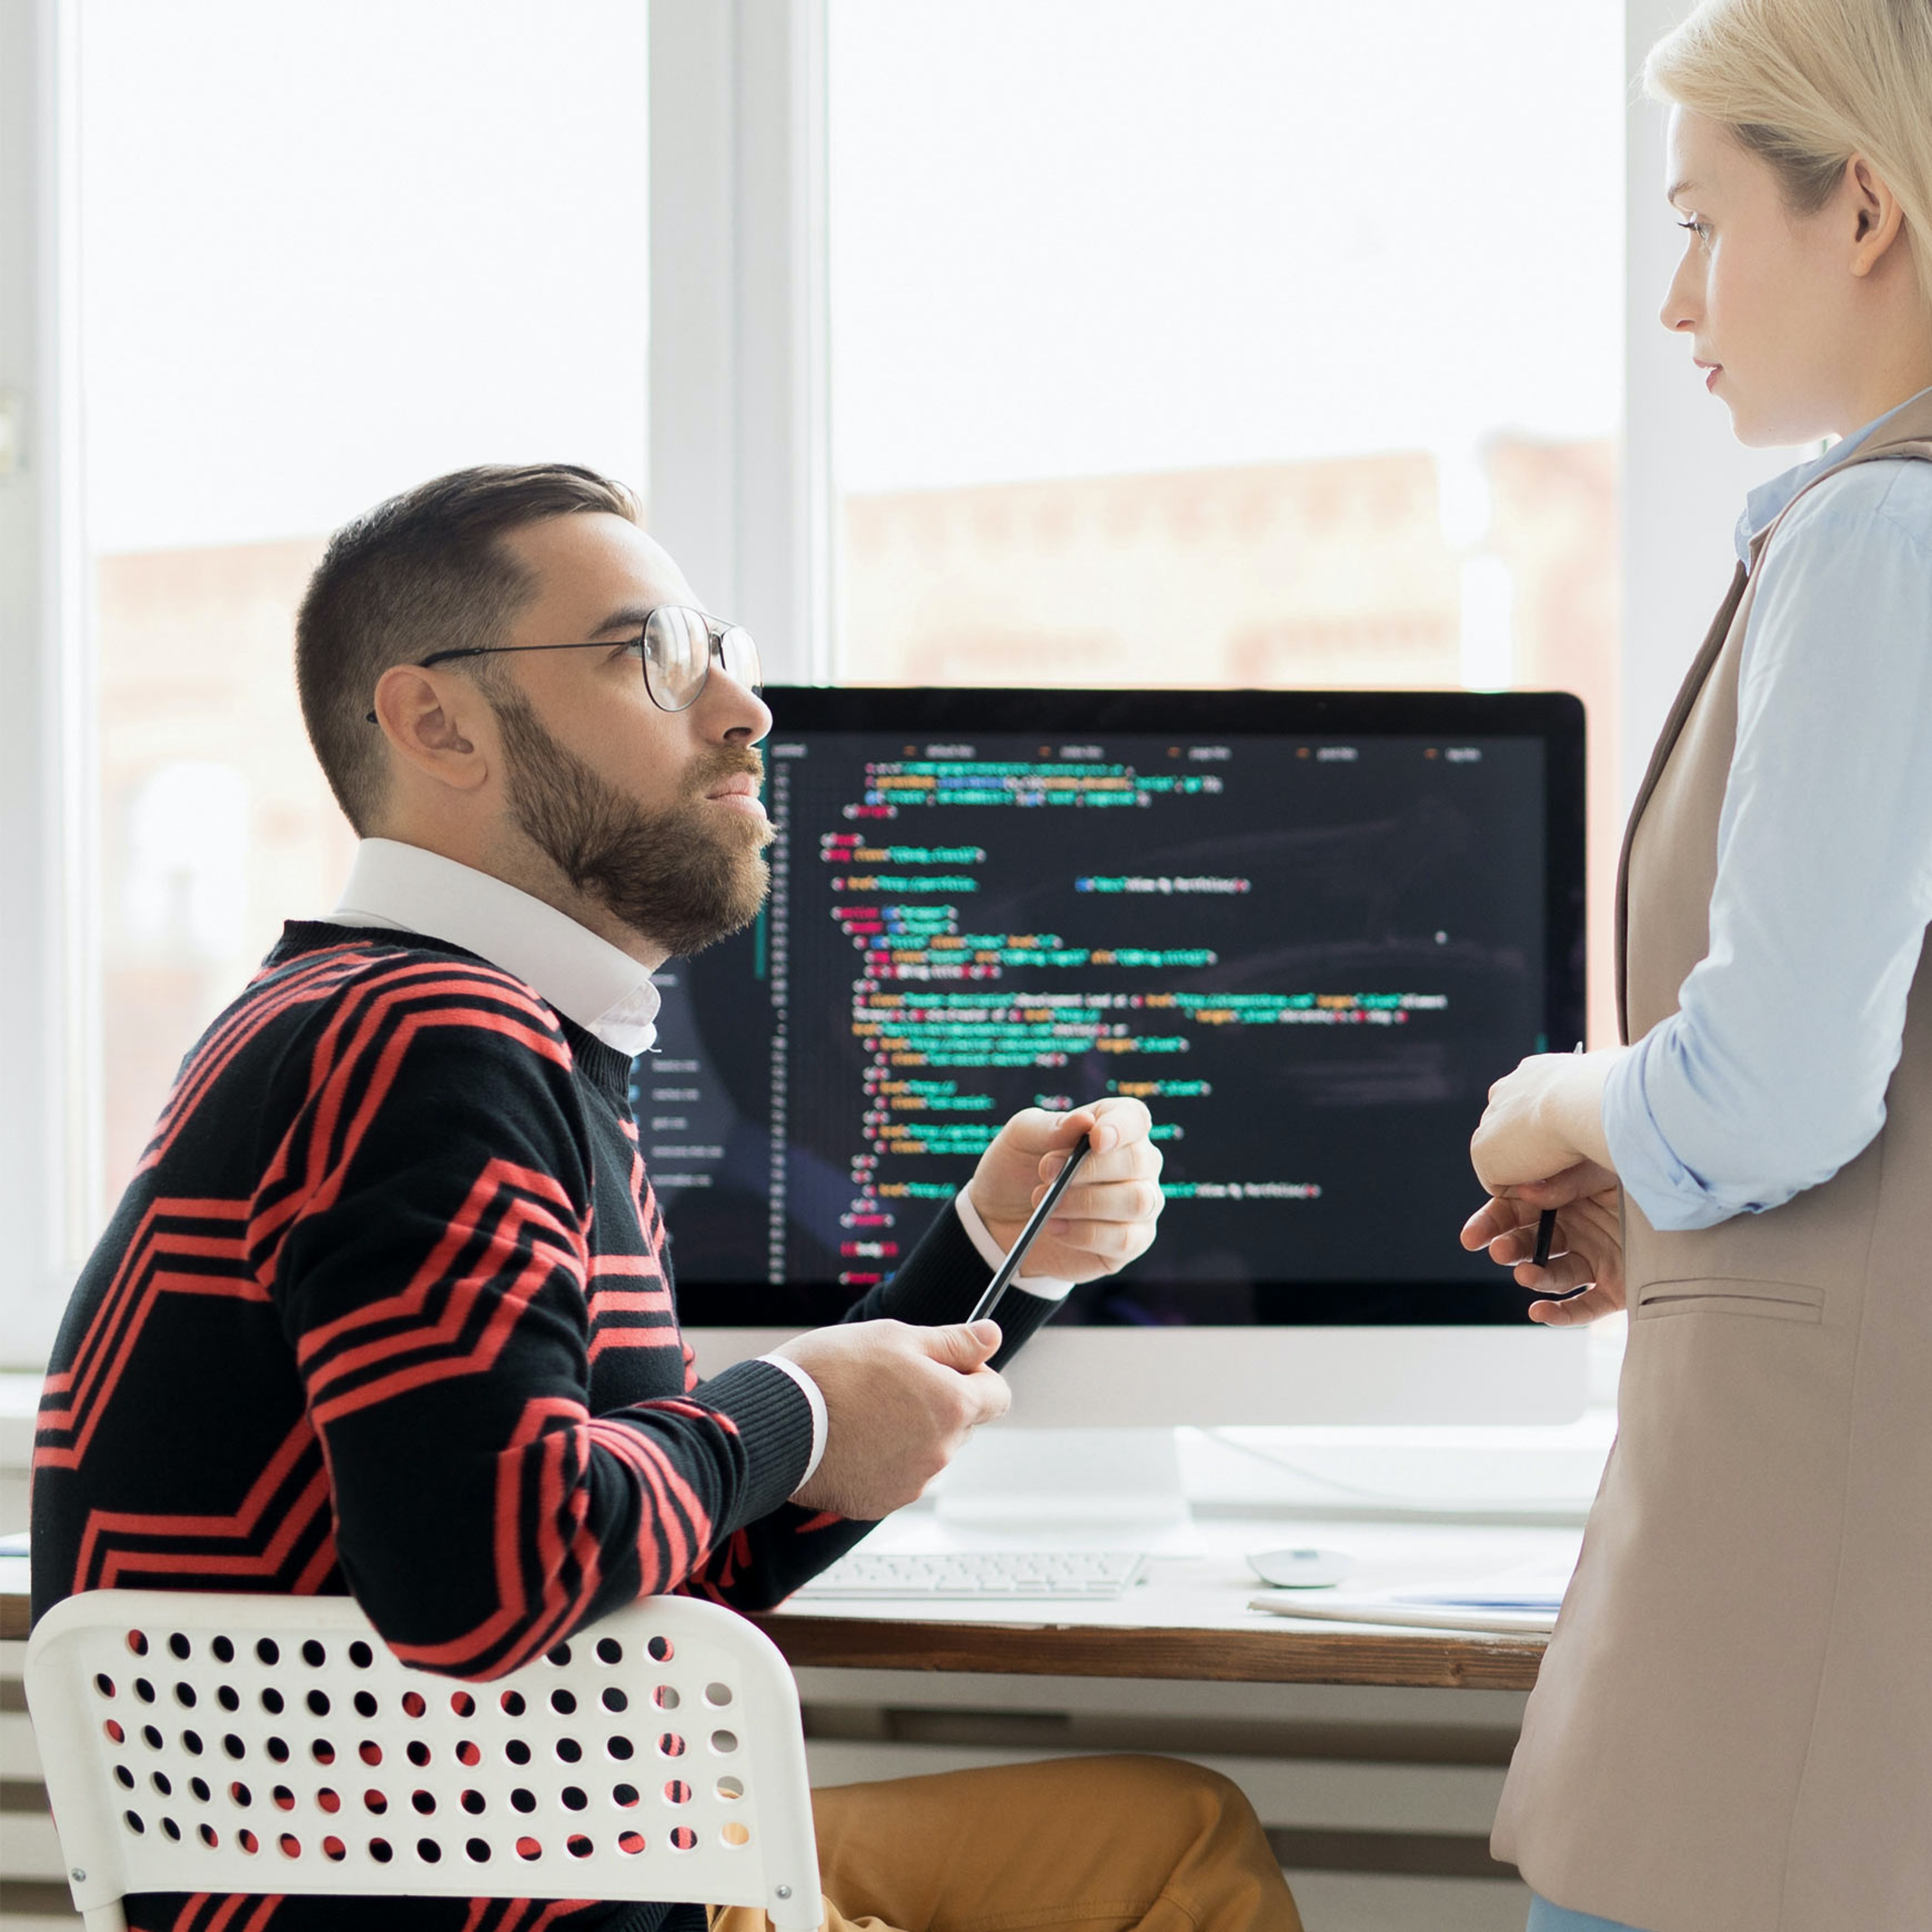 two employees chat in an office with a computer screen of code behind them